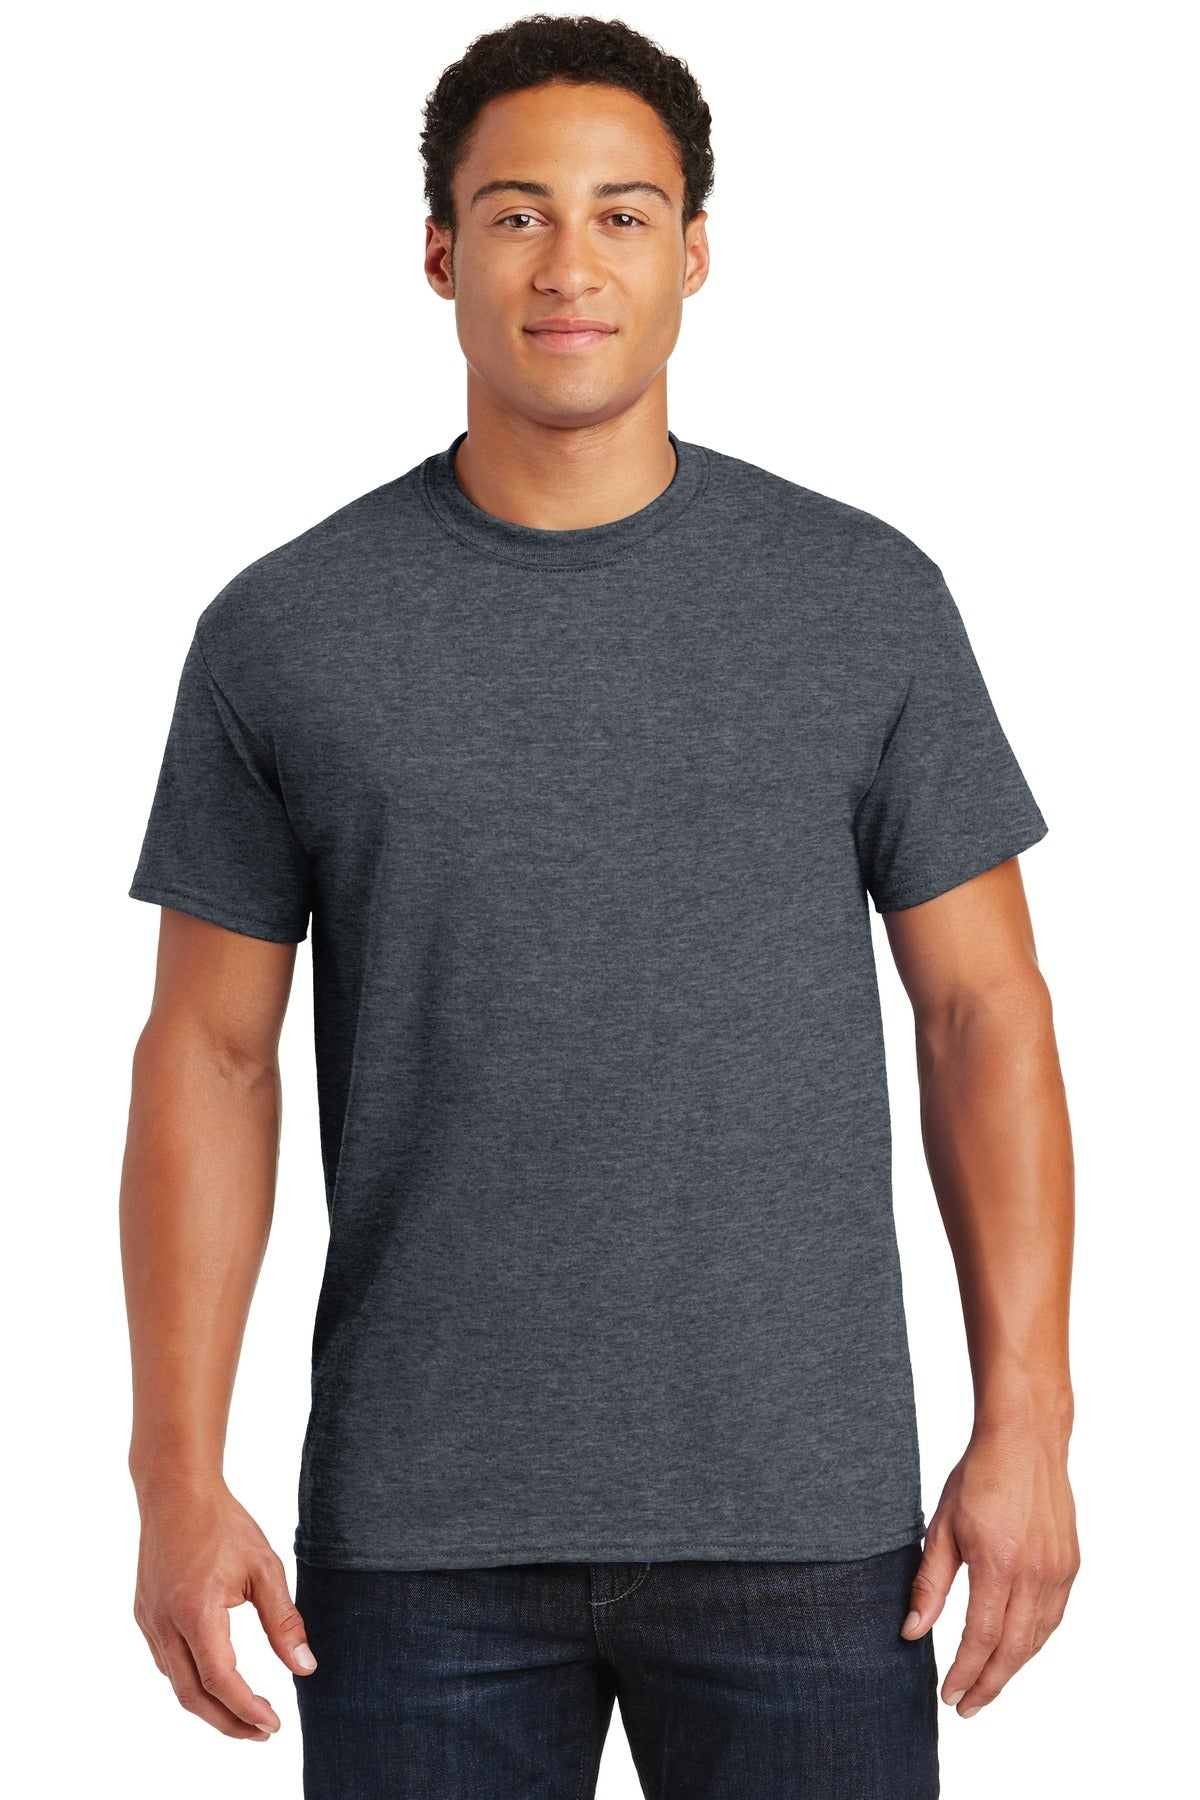 Dark Heather Gildan DryBlend 50 Cotton/50 Poly T-Shirt.